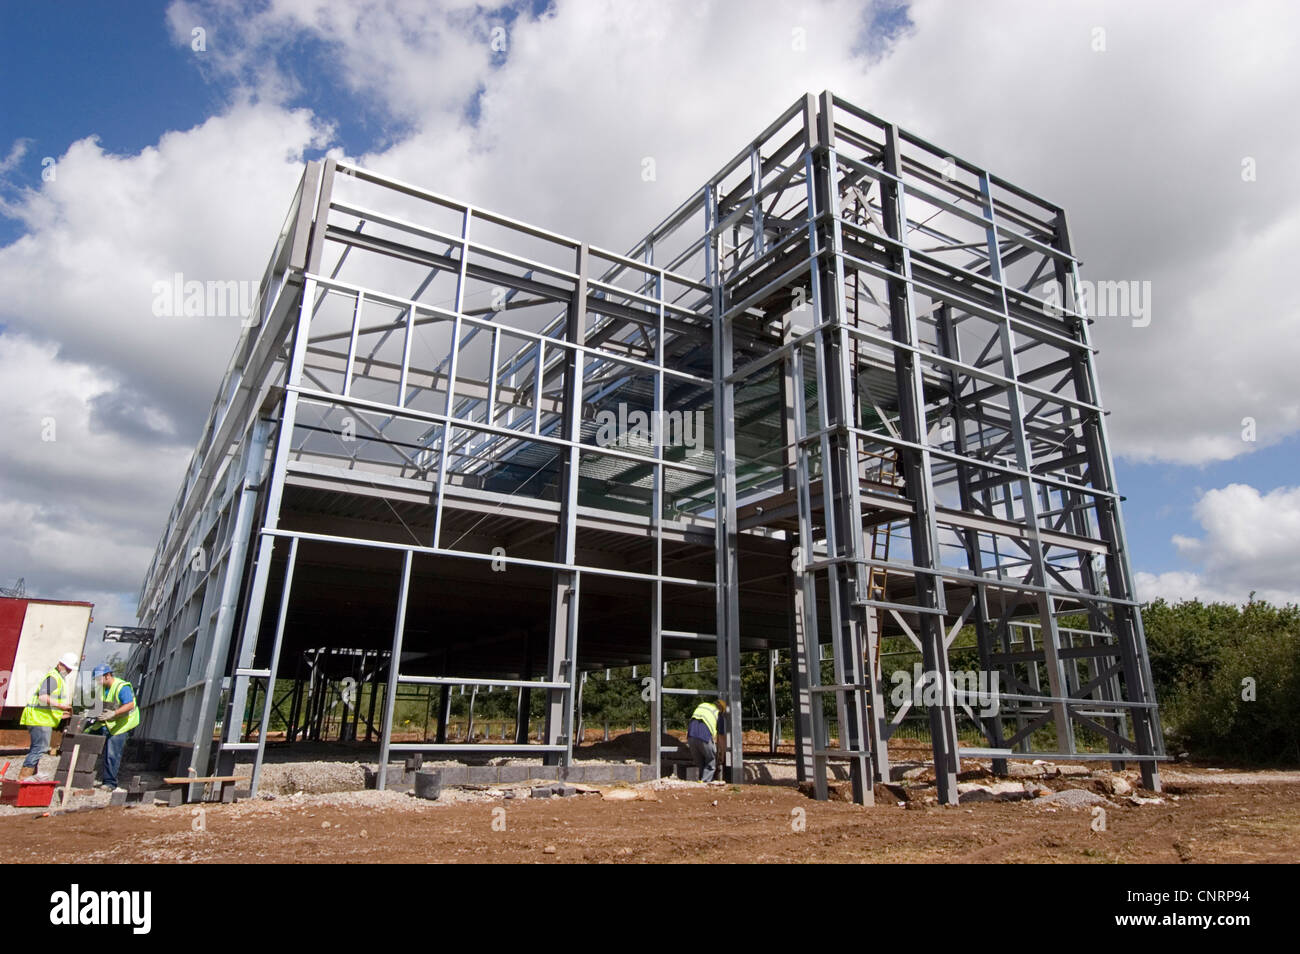 Steel Frame Building Under Construction Stockfotos & Steel Frame ...